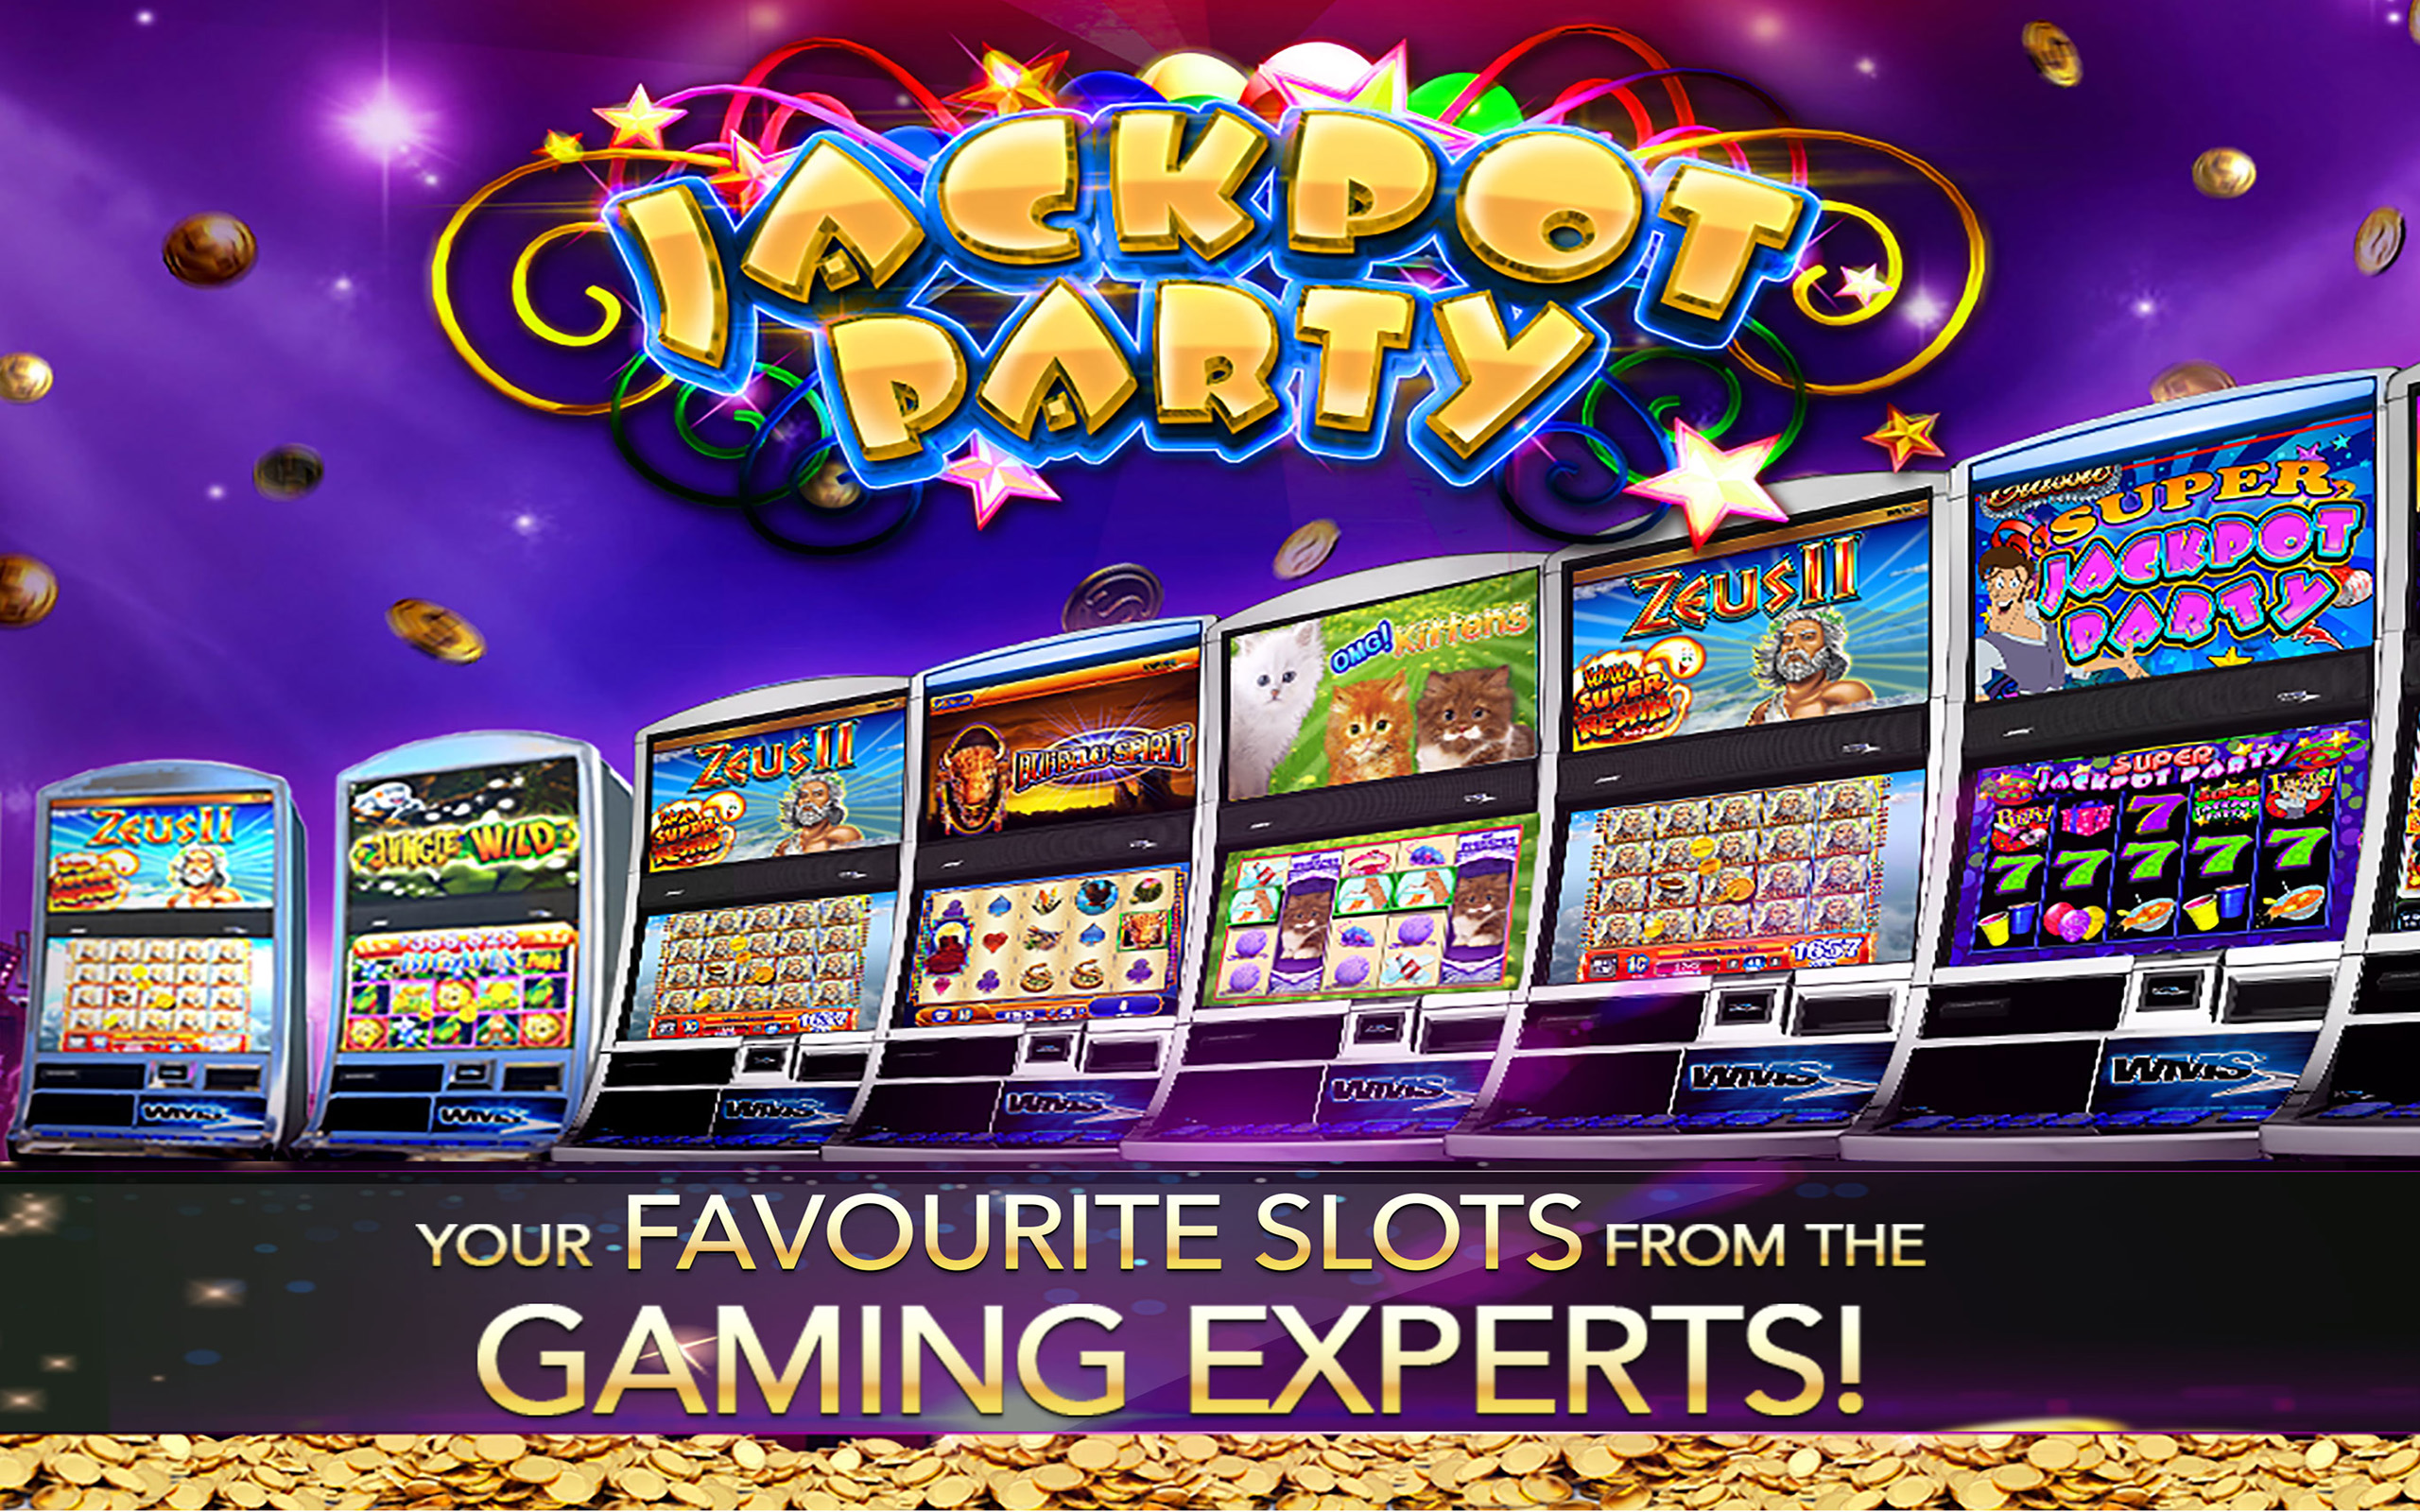 jackpot party casino slots customer service